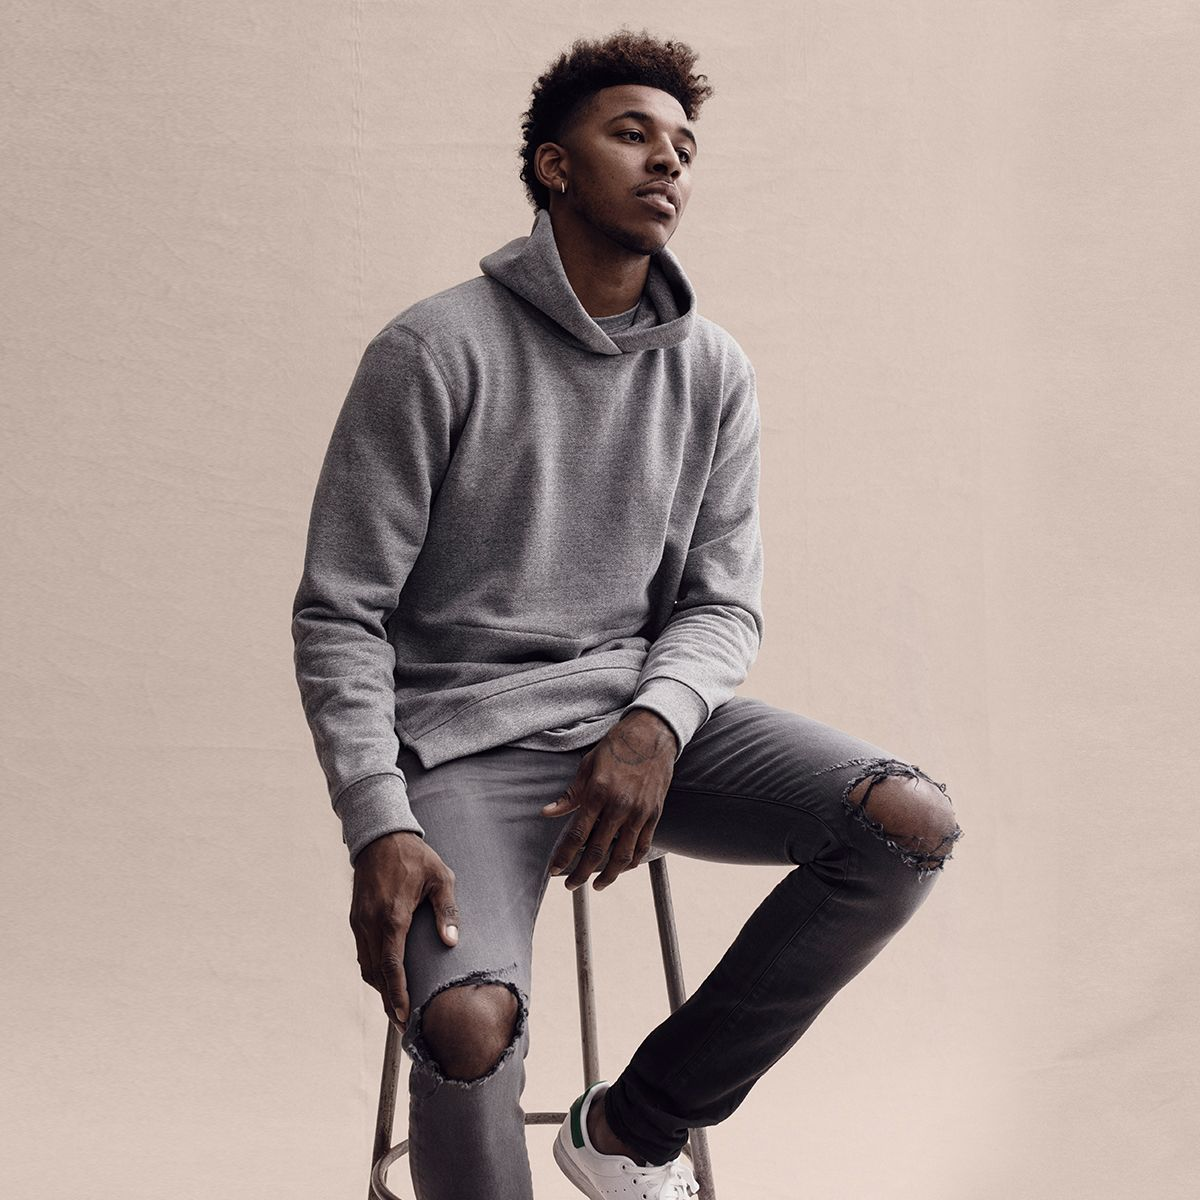 80fb2e502957 Nick Young for MR PORTER in John Elliot hoodie and jeans.